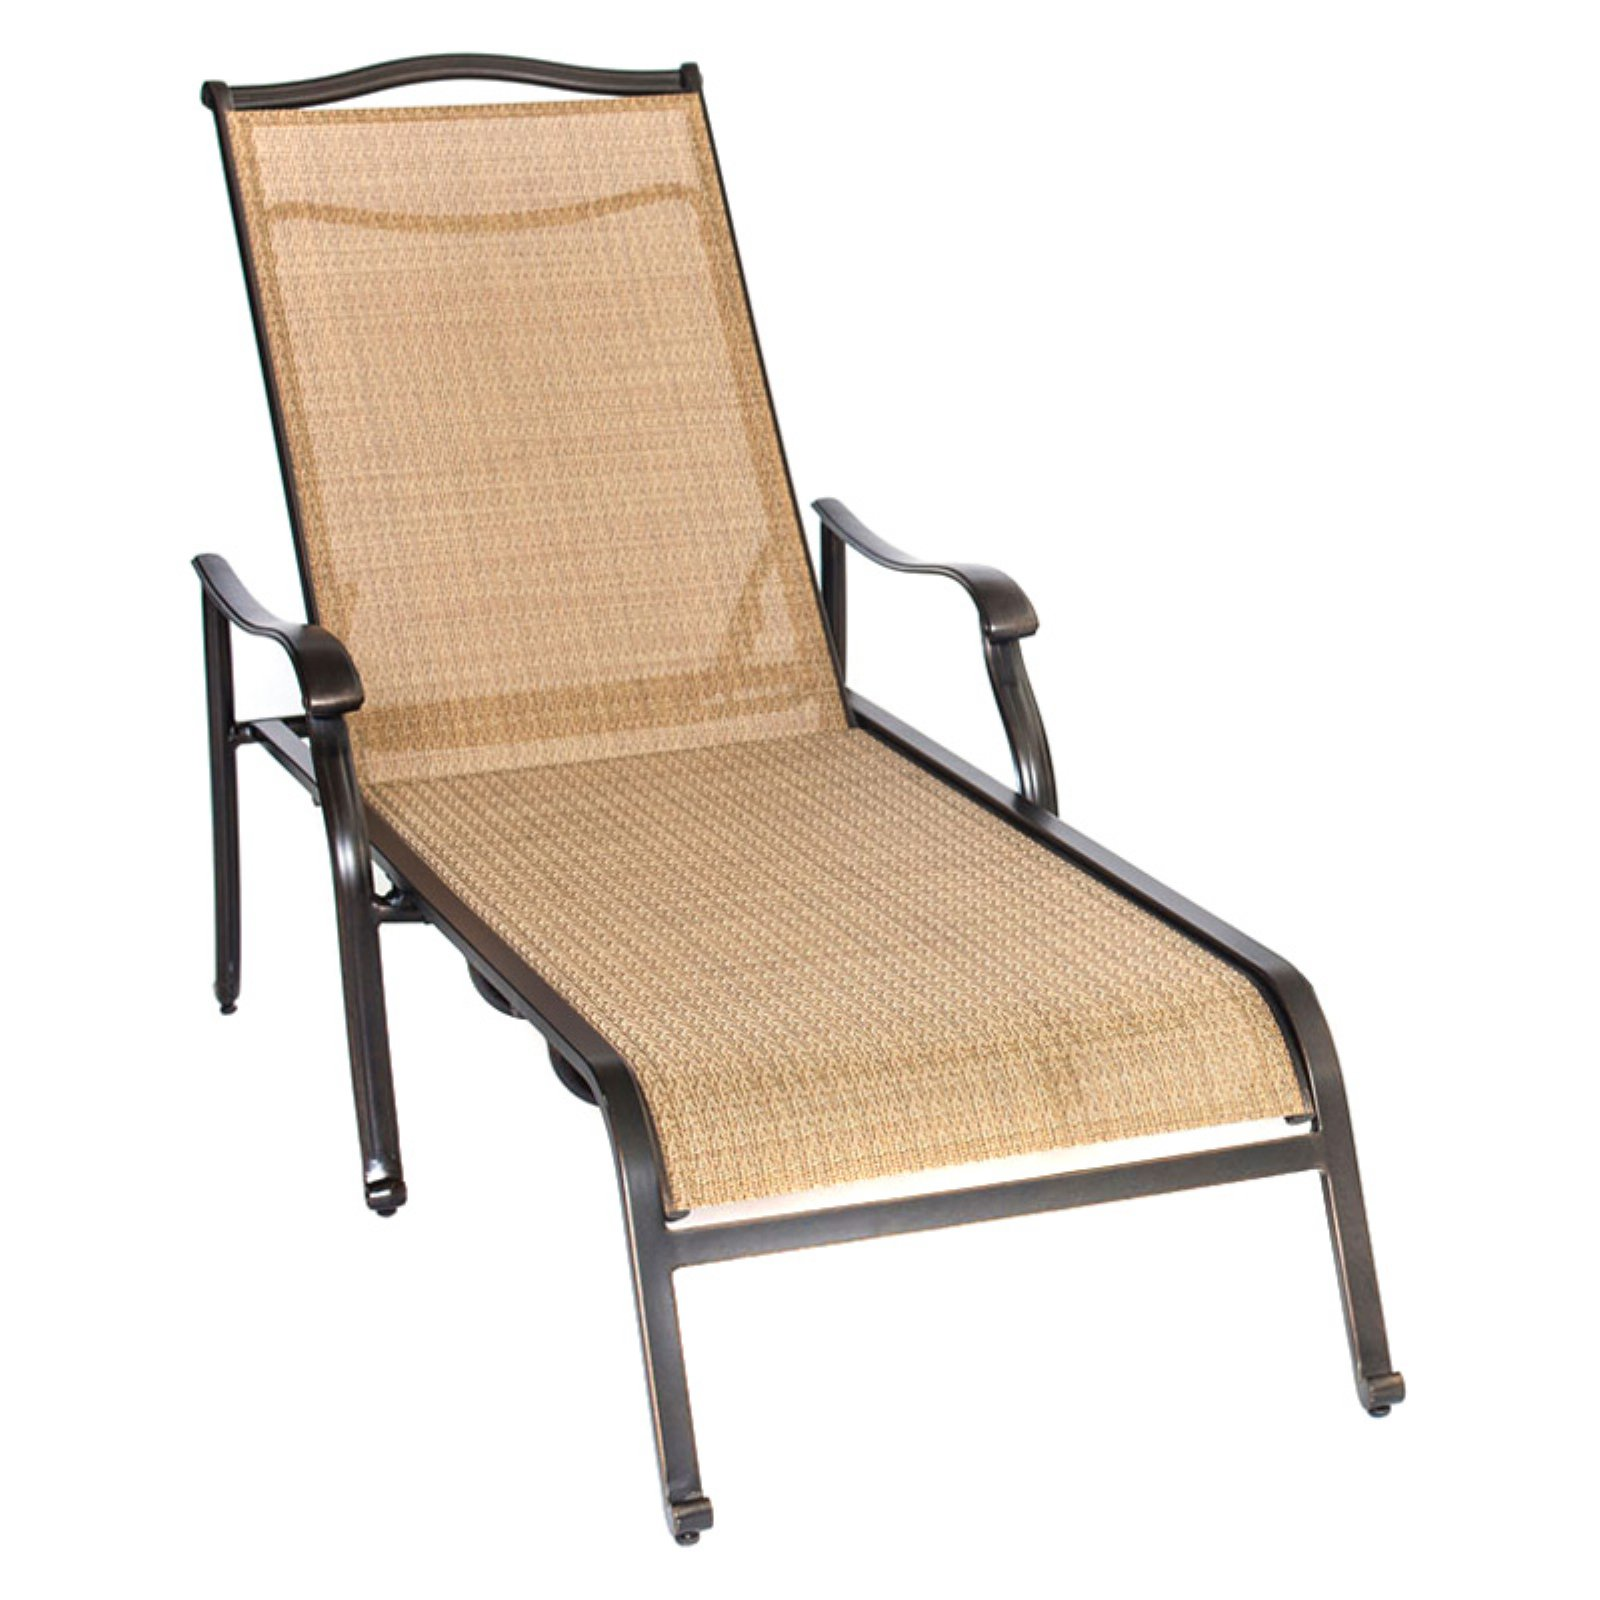 Hanover Outdoor Monaco Chaise Lounge Chair